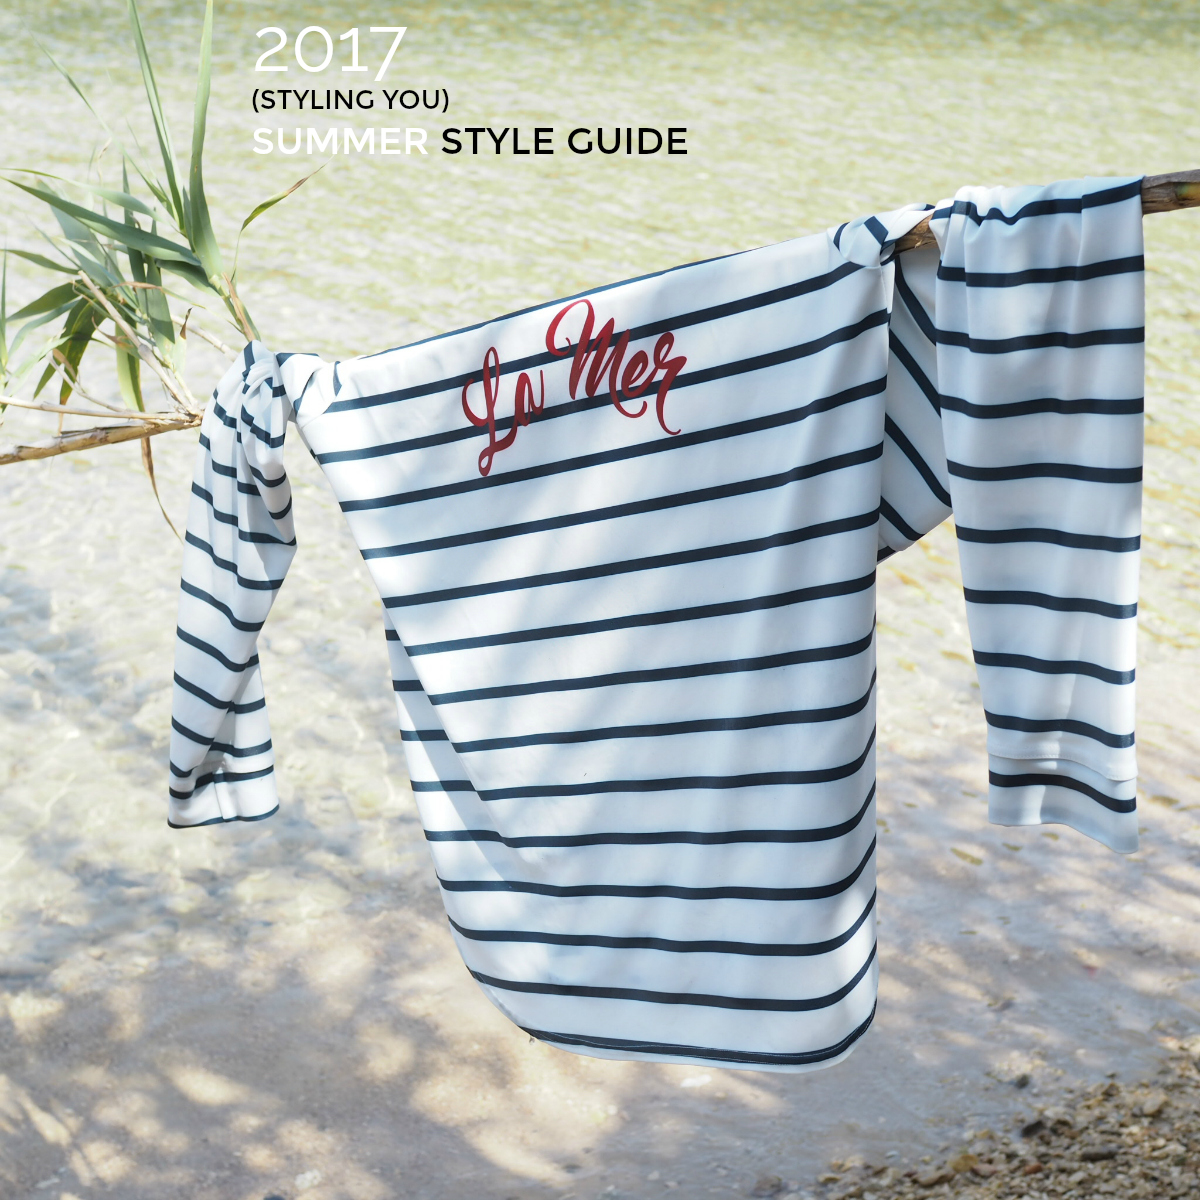 The complete Styling You 2017 summer style guide